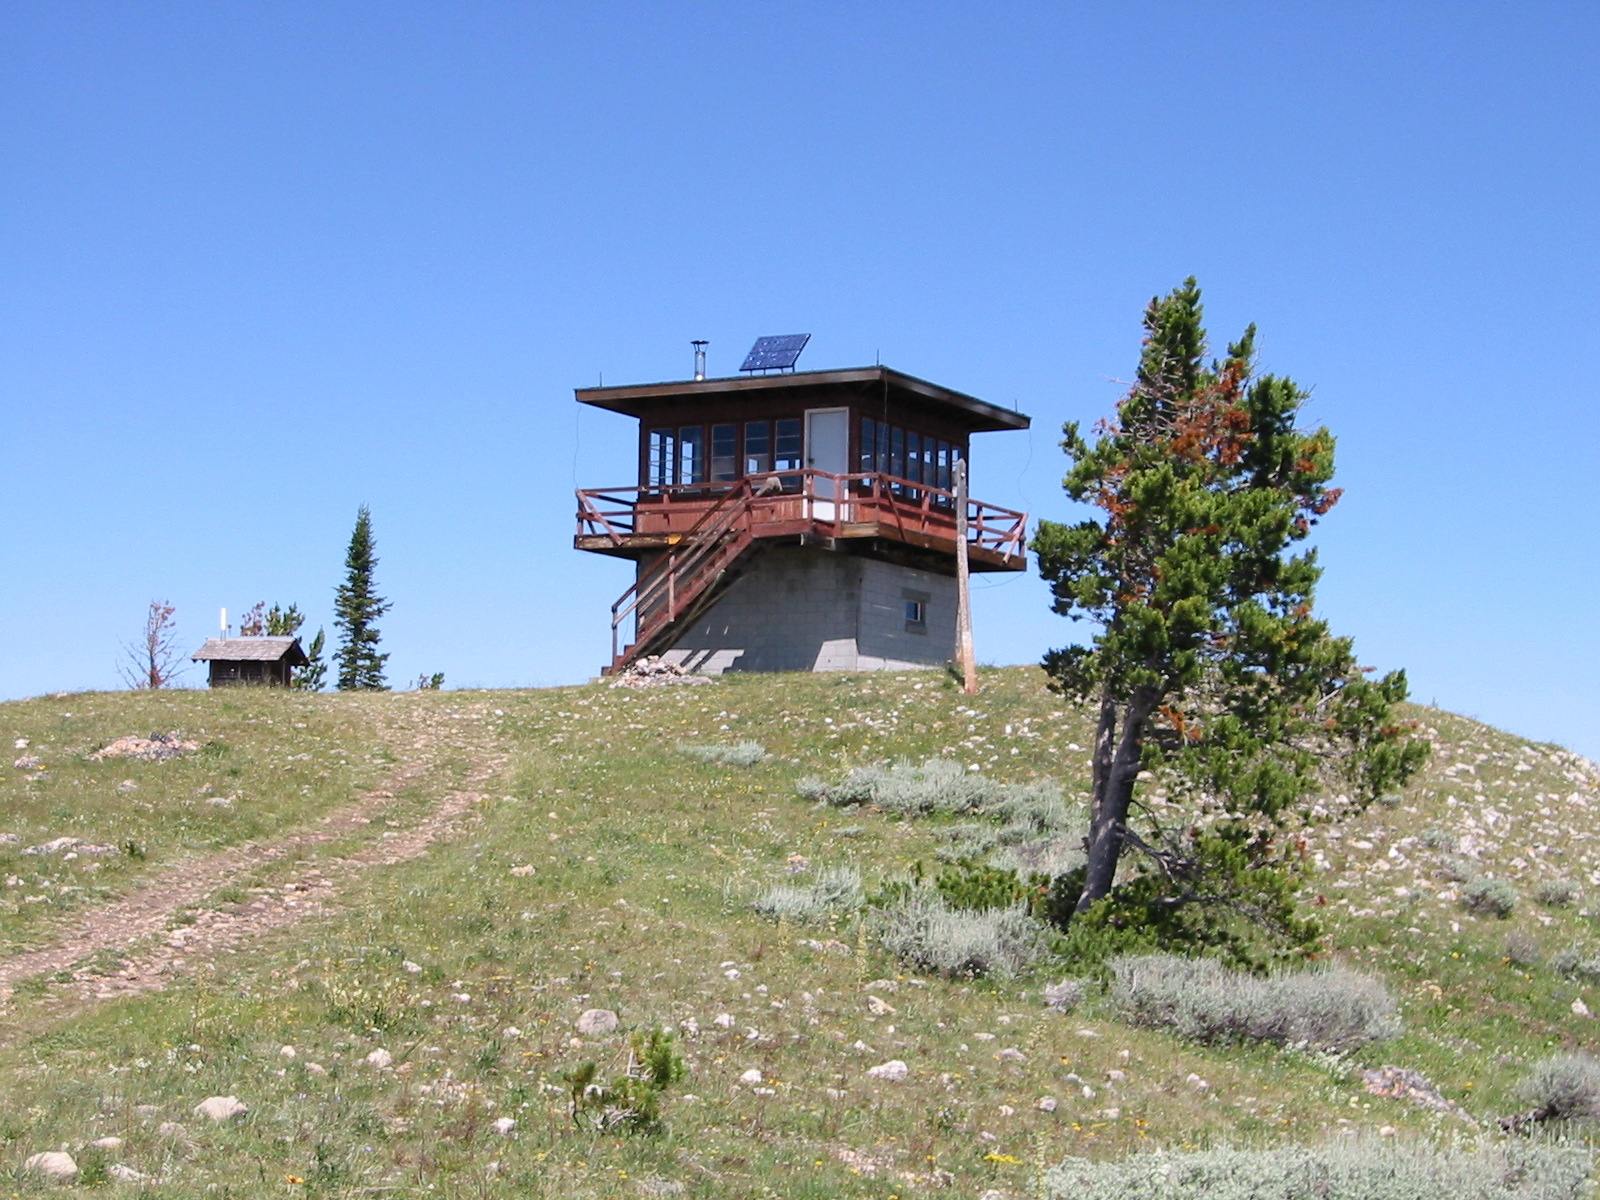 photo: Garnet Mountain fire lookout, now a rental cabin. Photo by USDA Forest Service.